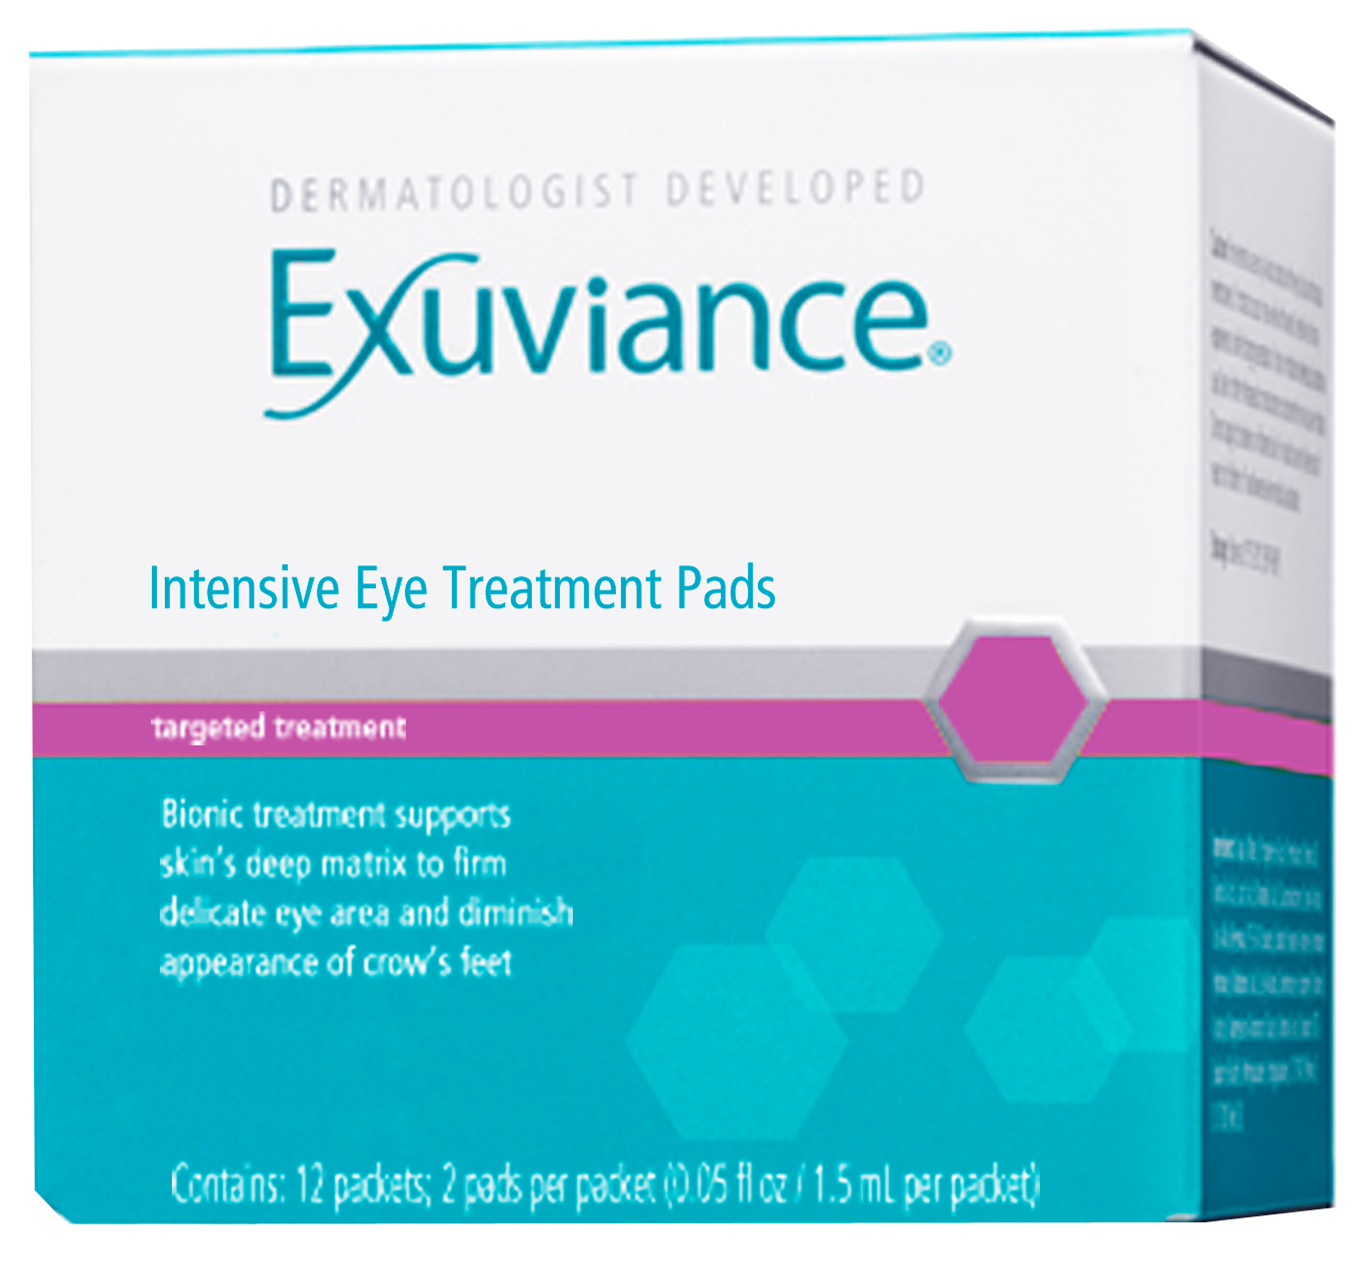 Intensive-Eye-Treatment-Pads.png